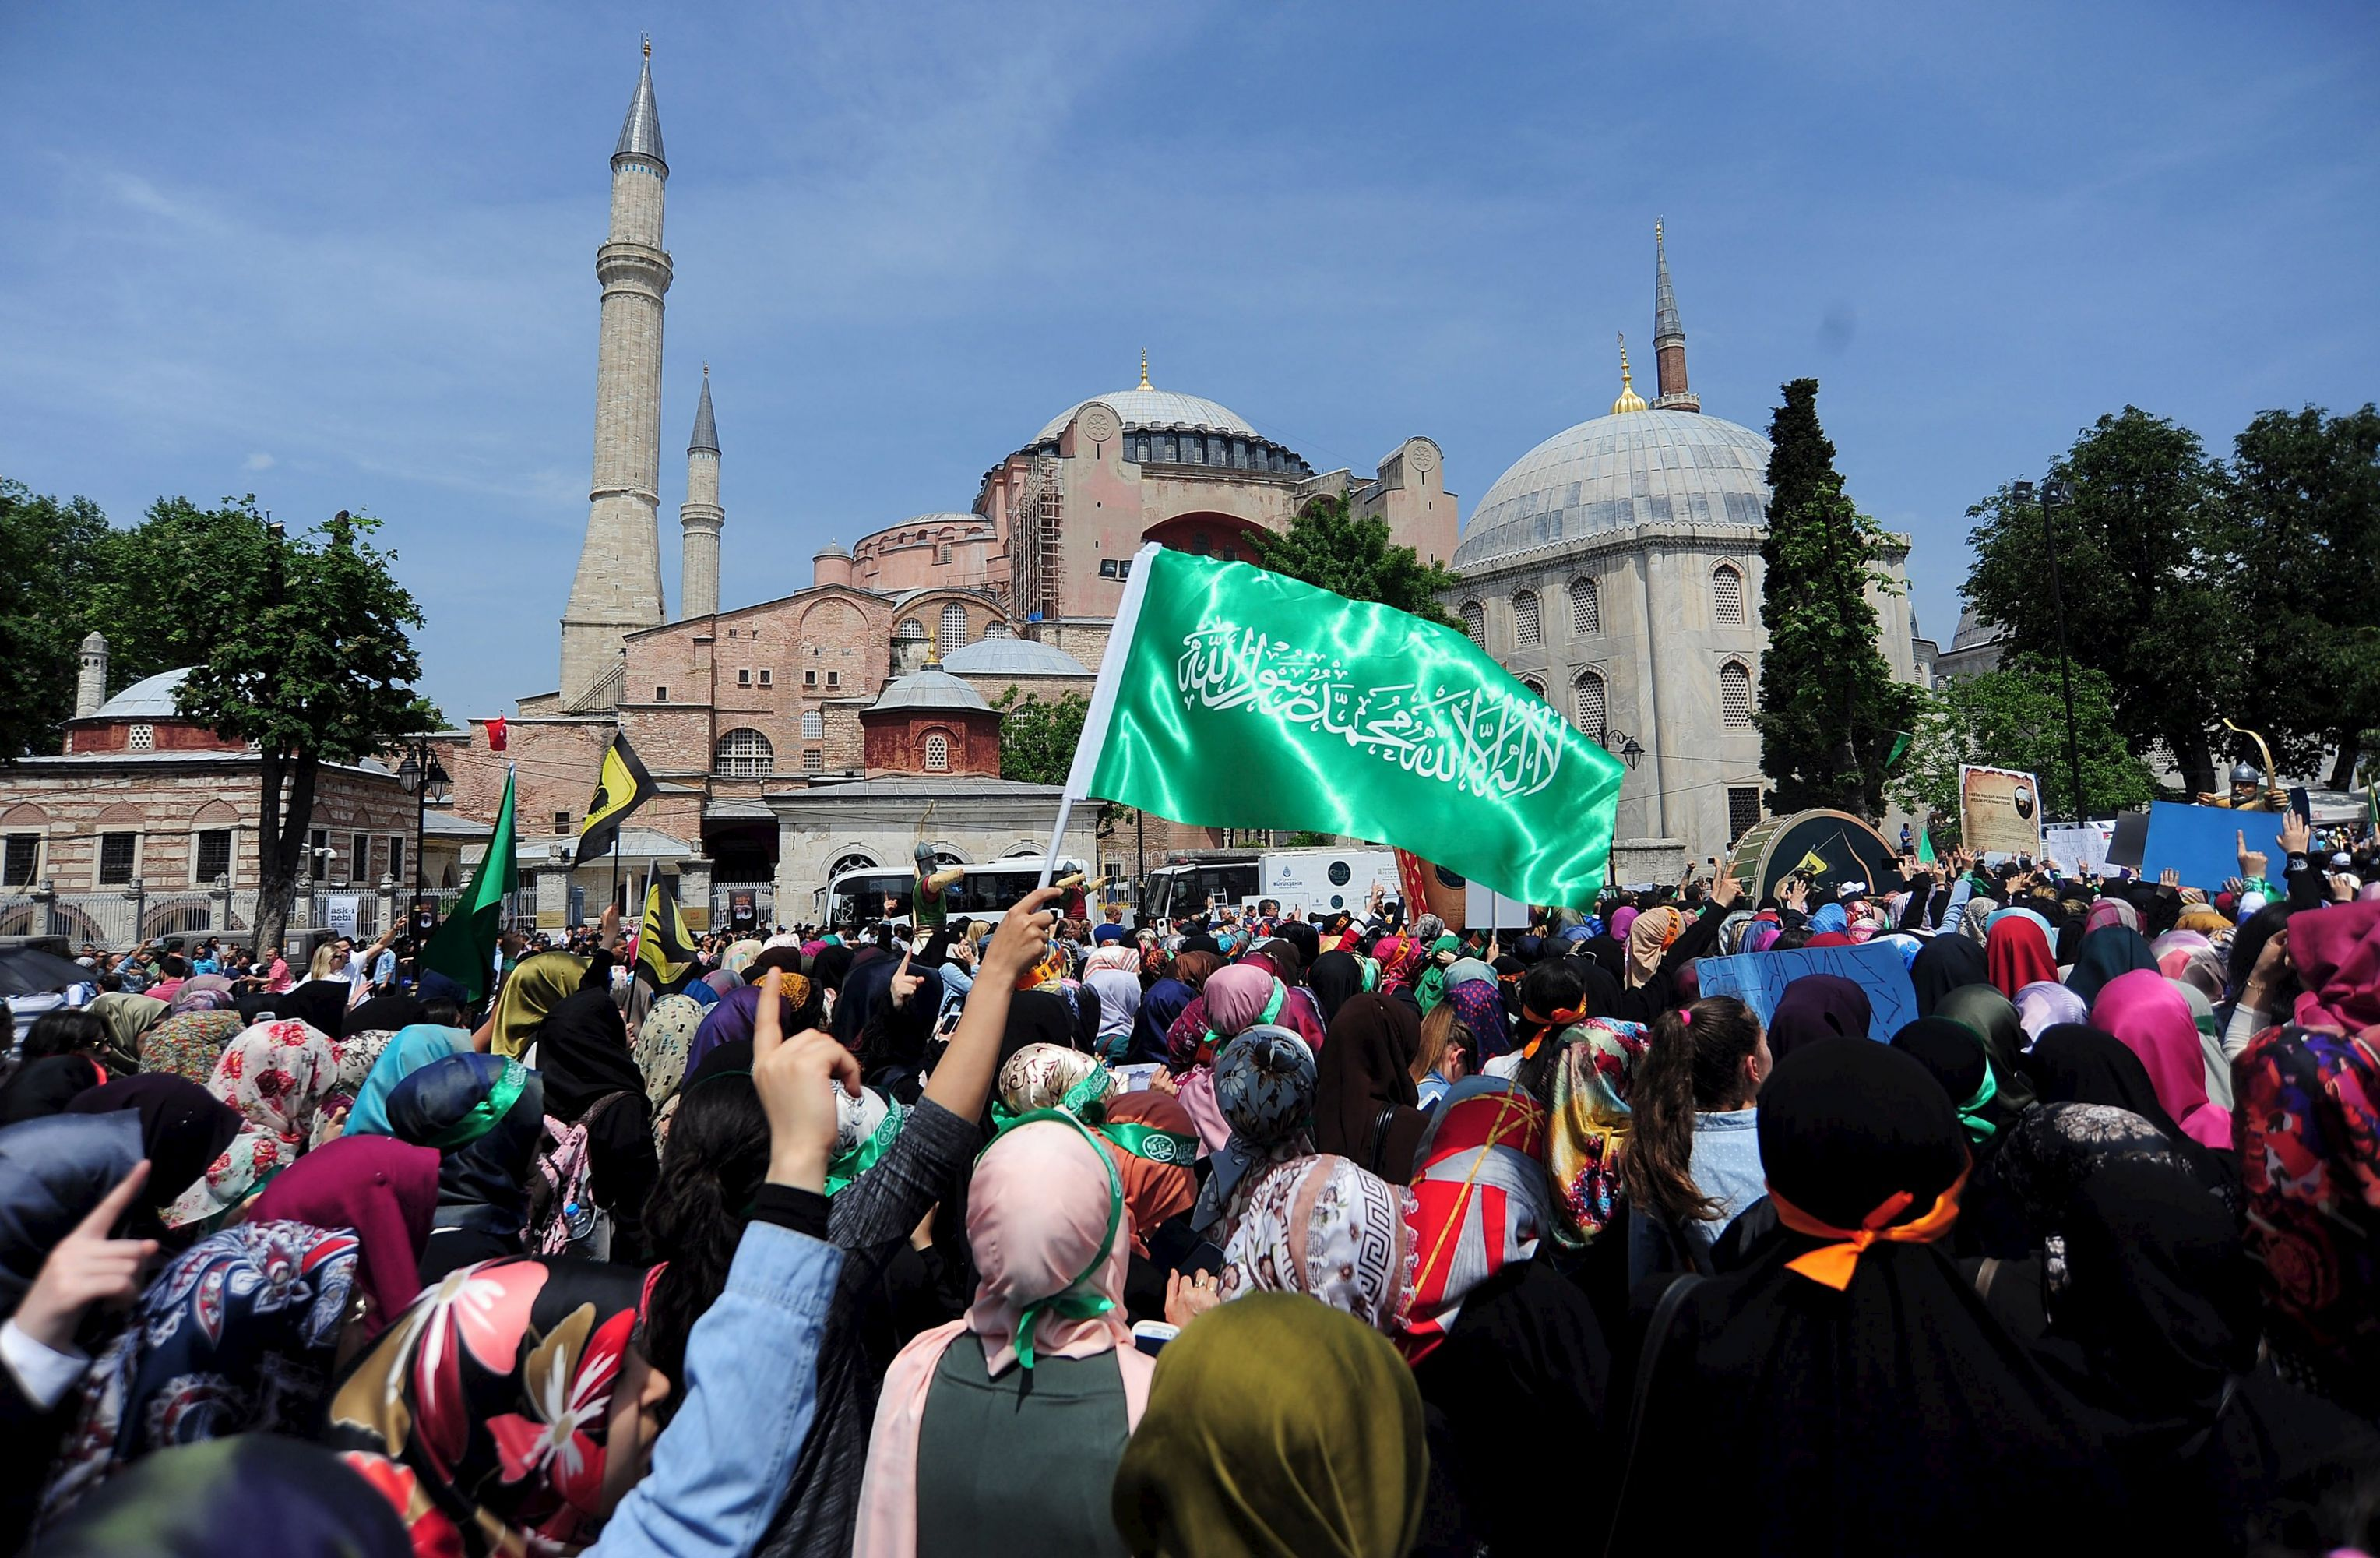 A file picture shows supporters of the Muslim Brotherhood shouting slogans during a rally in front of the Hagia Sophia museum in Istanbul. (Reuters)